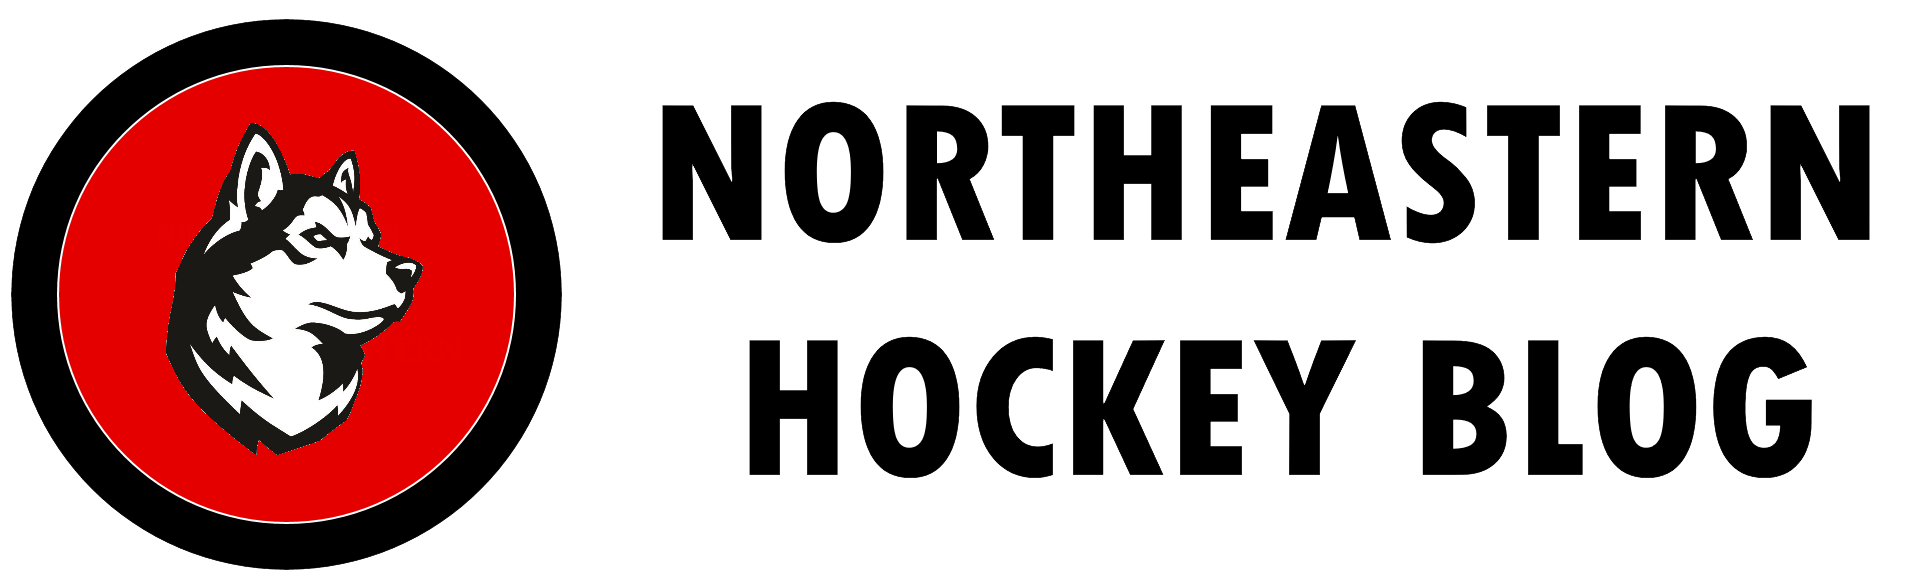 The Northeastern Hockey Blog